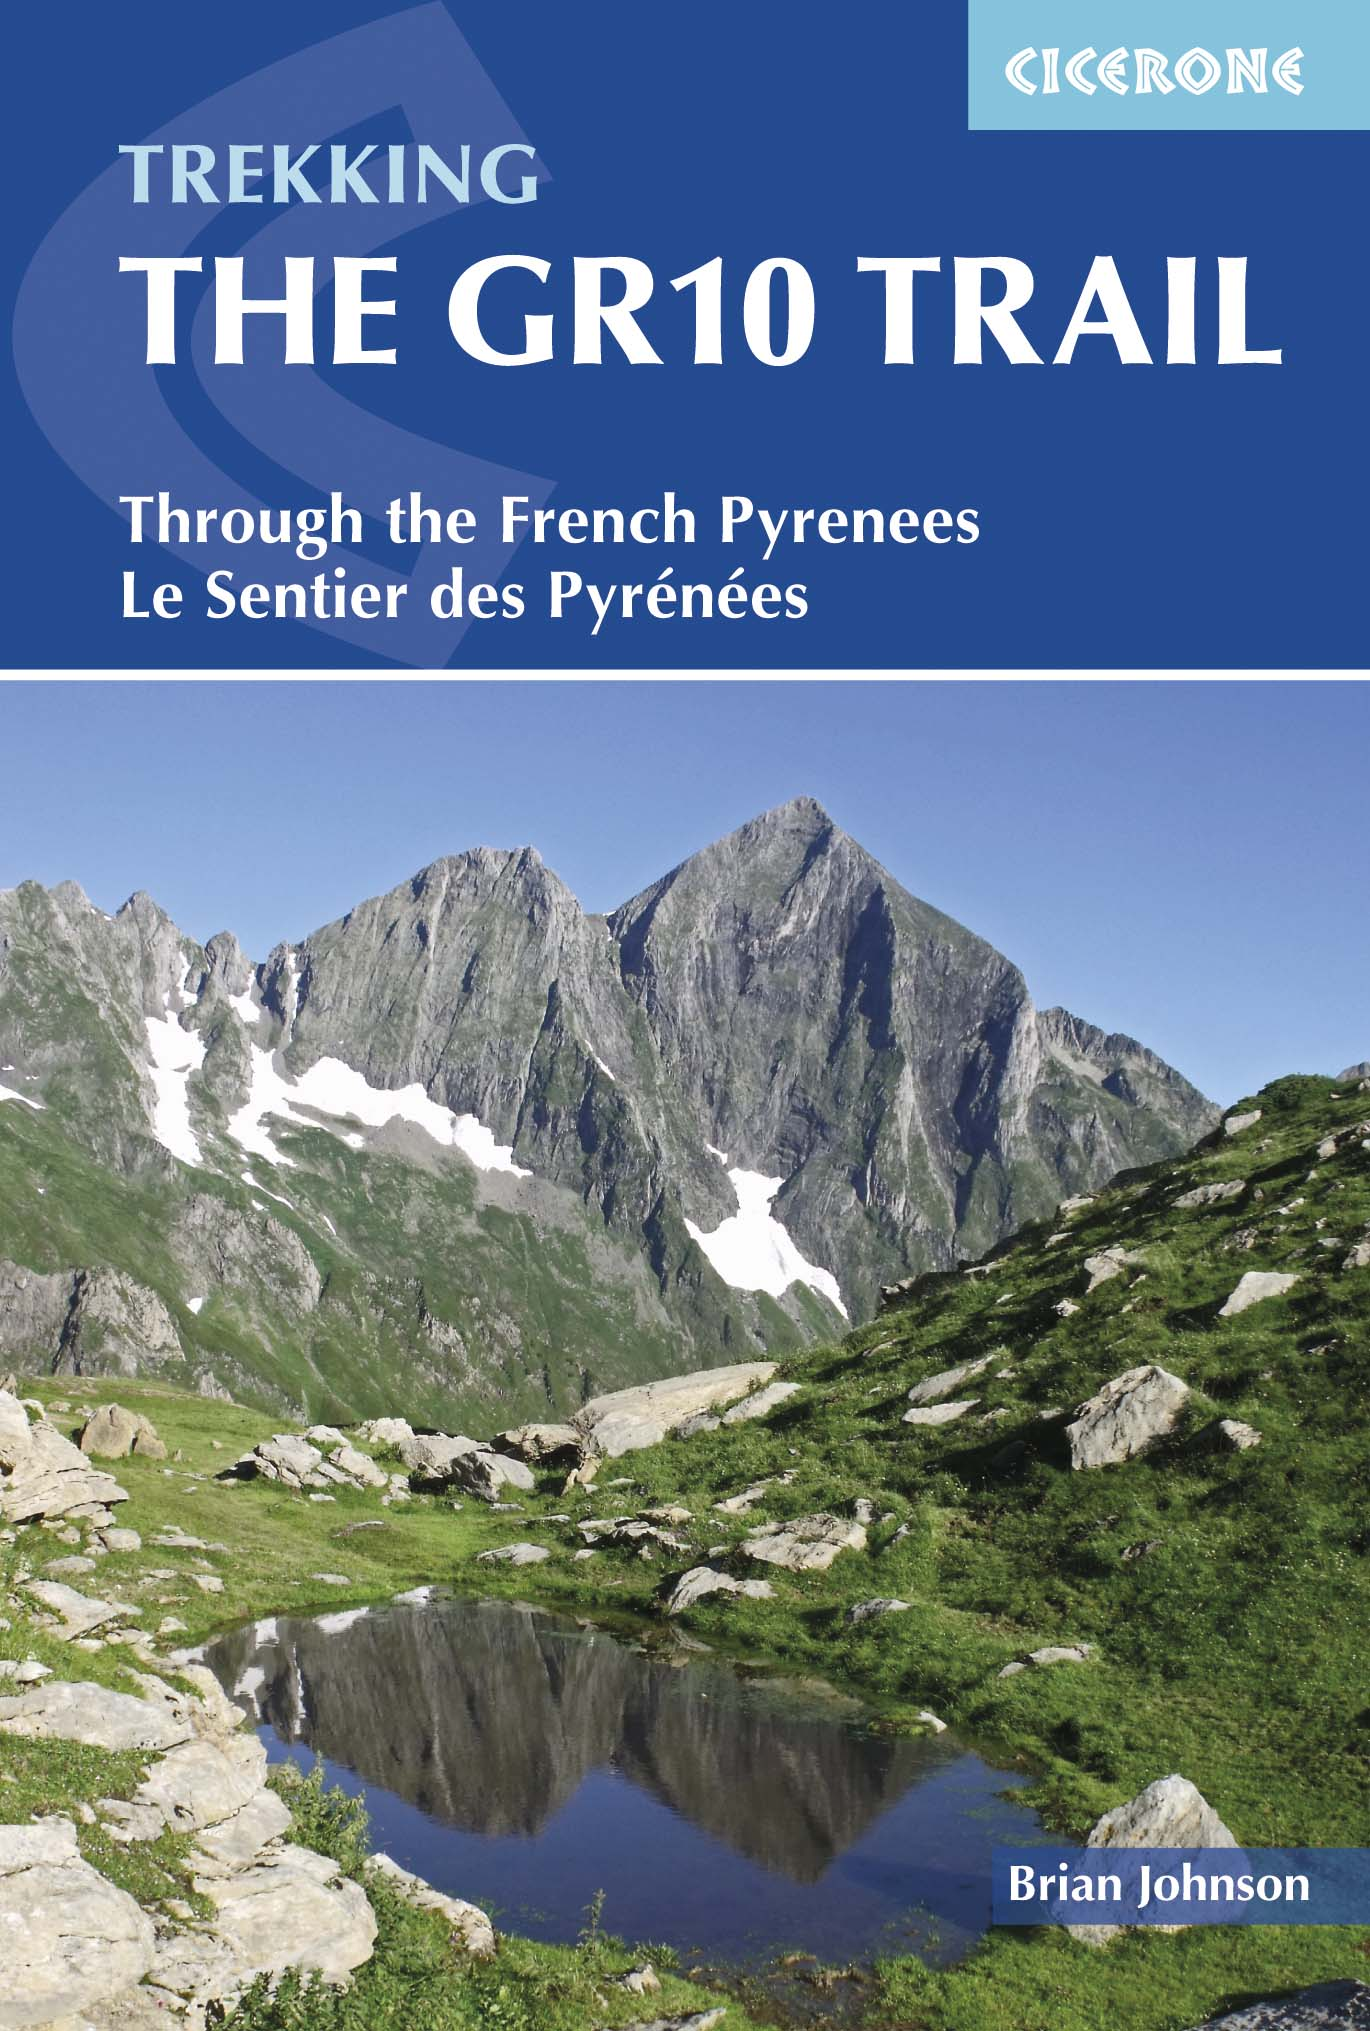 GR10 Trail / Through the French Pyrenees-Sentier Pyrenees